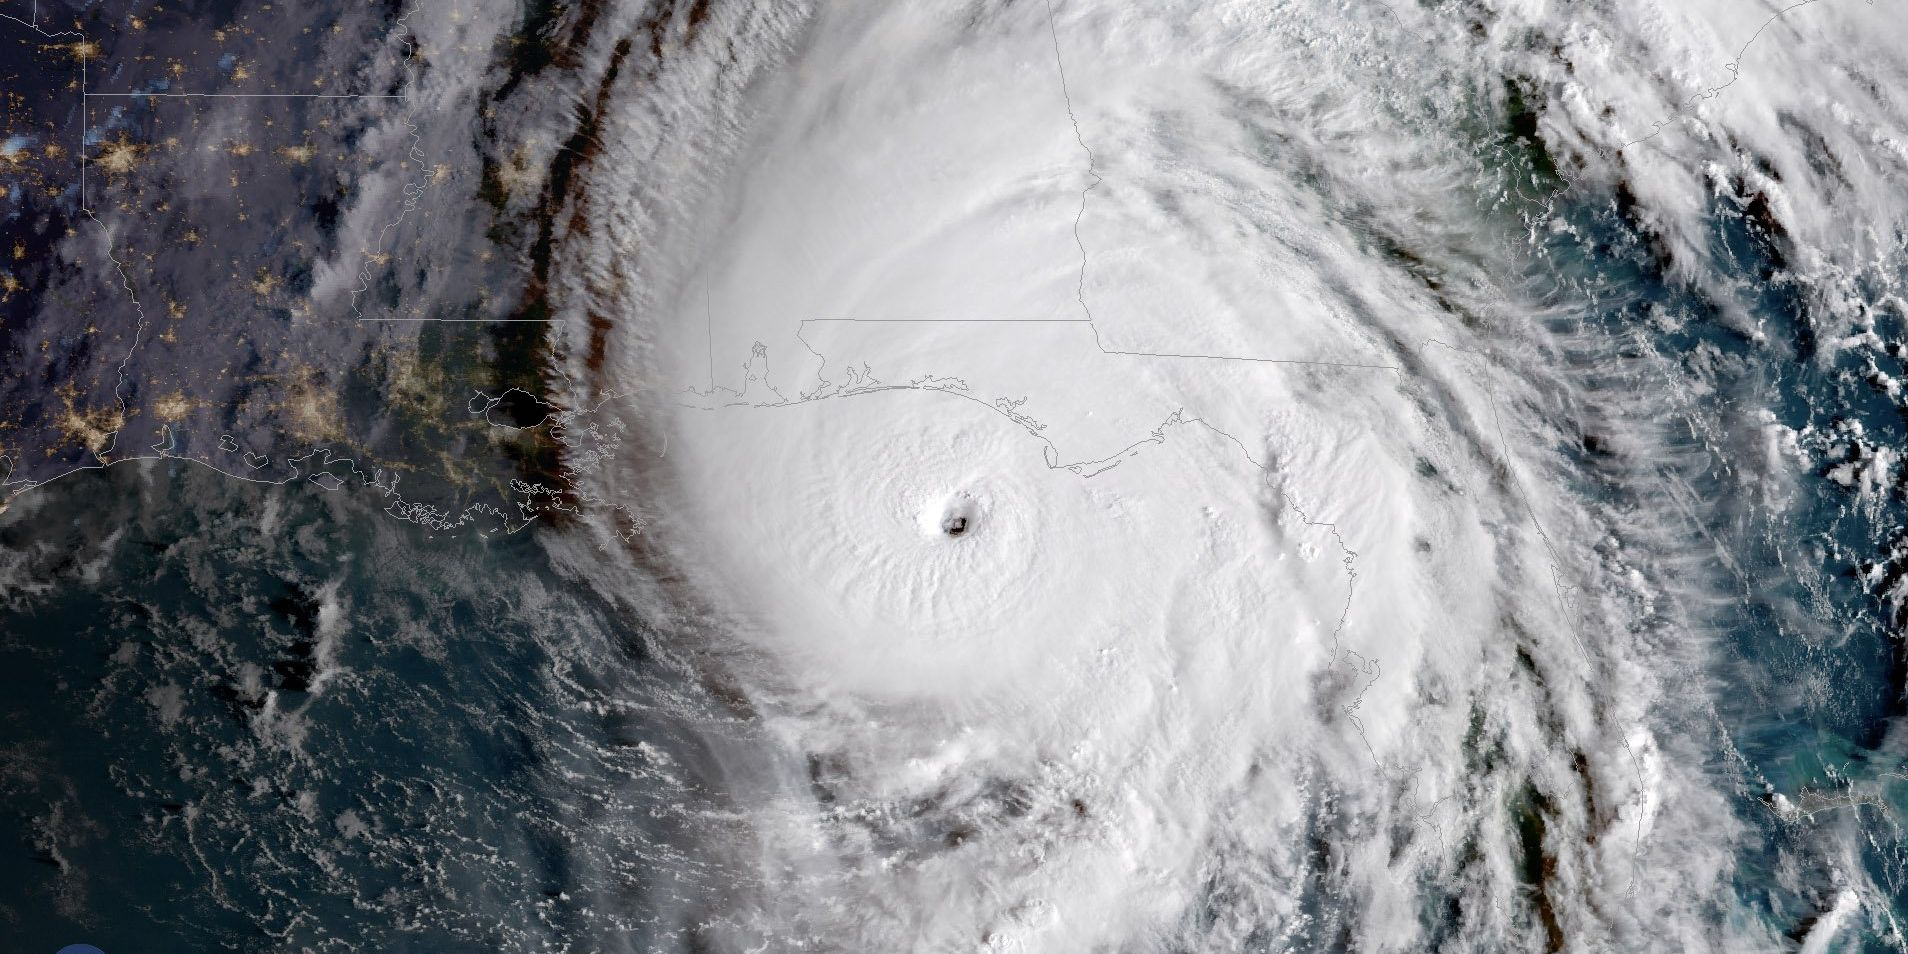 Watch as Hurricane Michael comes ashore from live cams along the Florida coast